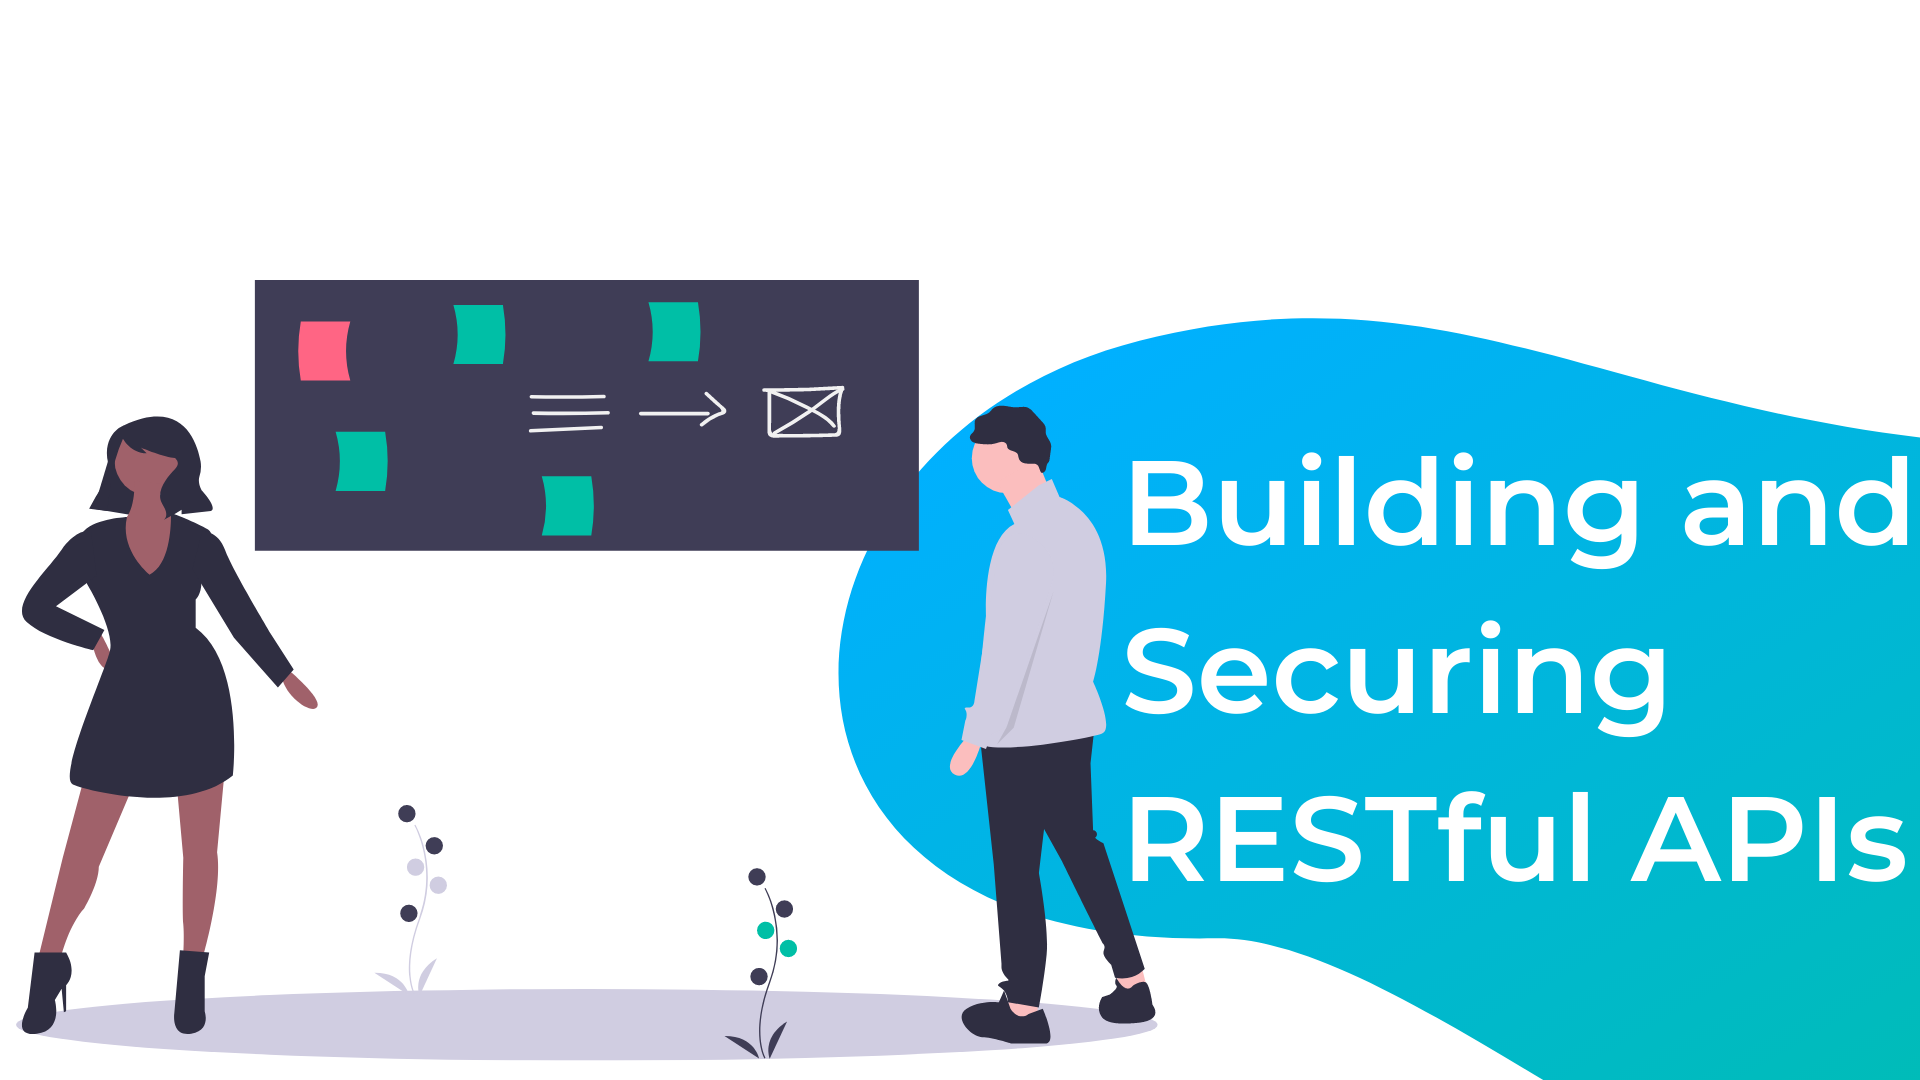 Building and Securing RESTful APIs